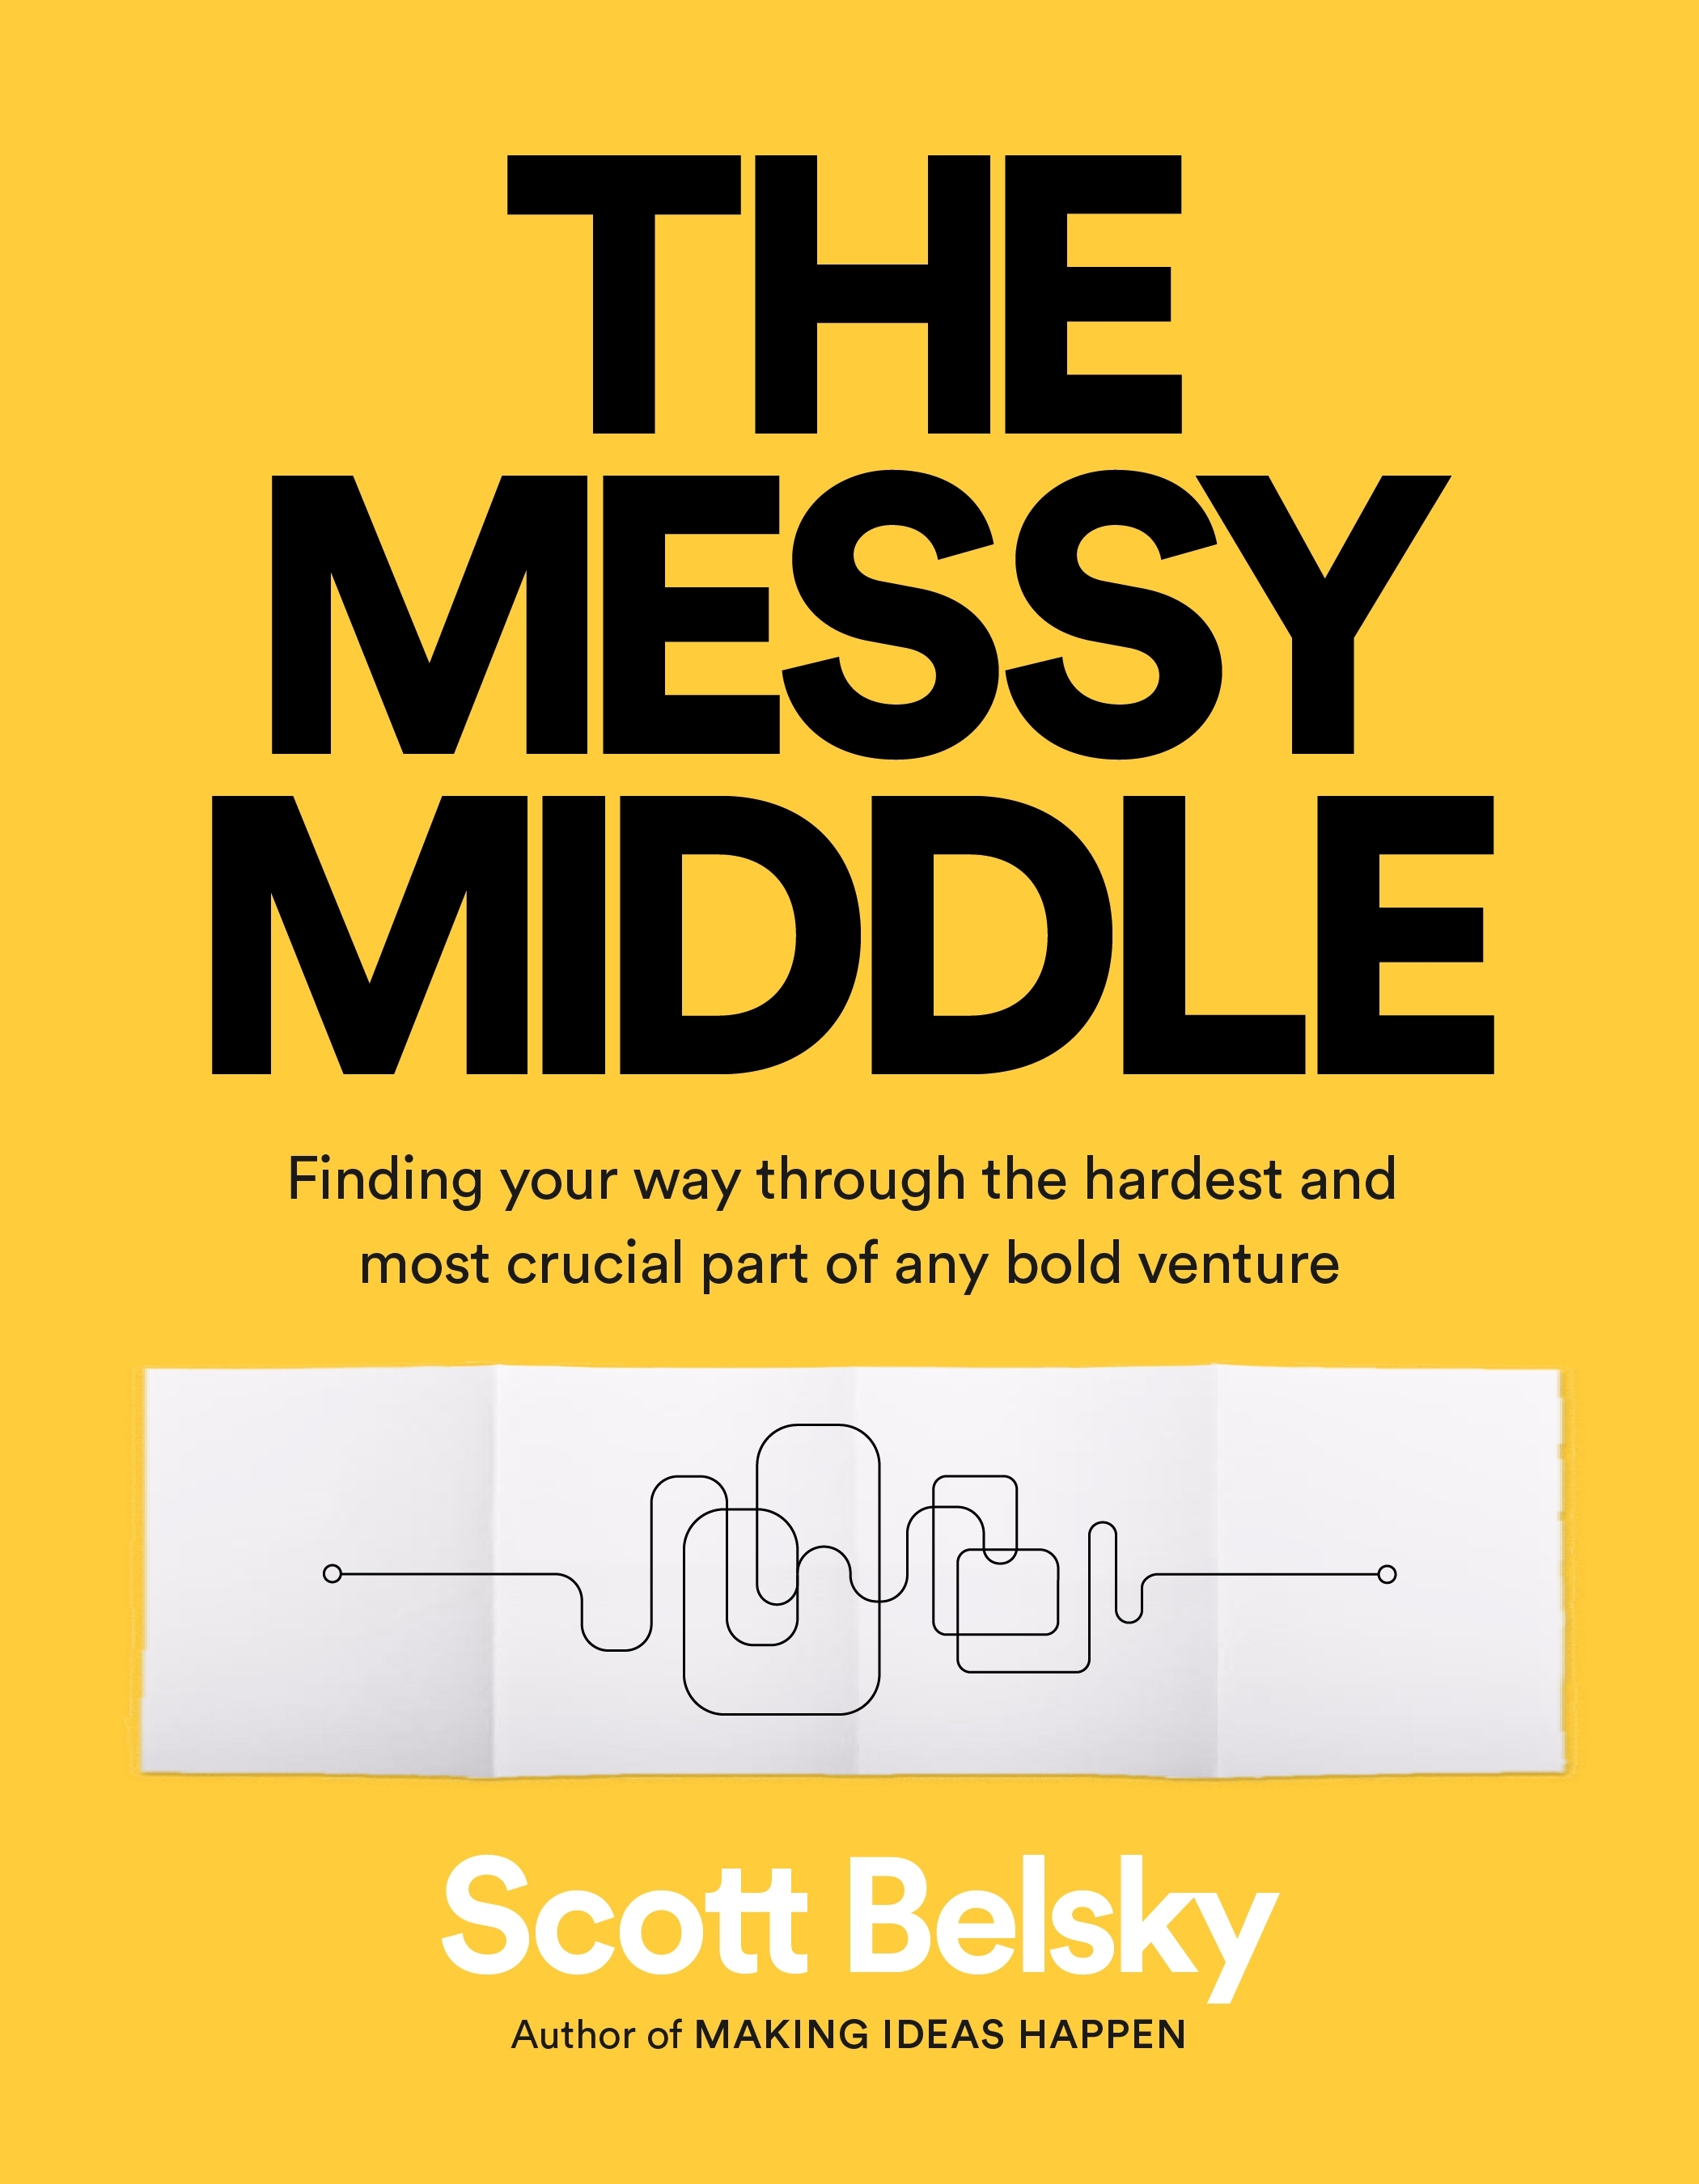 The Messy Middle by Scott Belsky, ISBN: 9780241310175